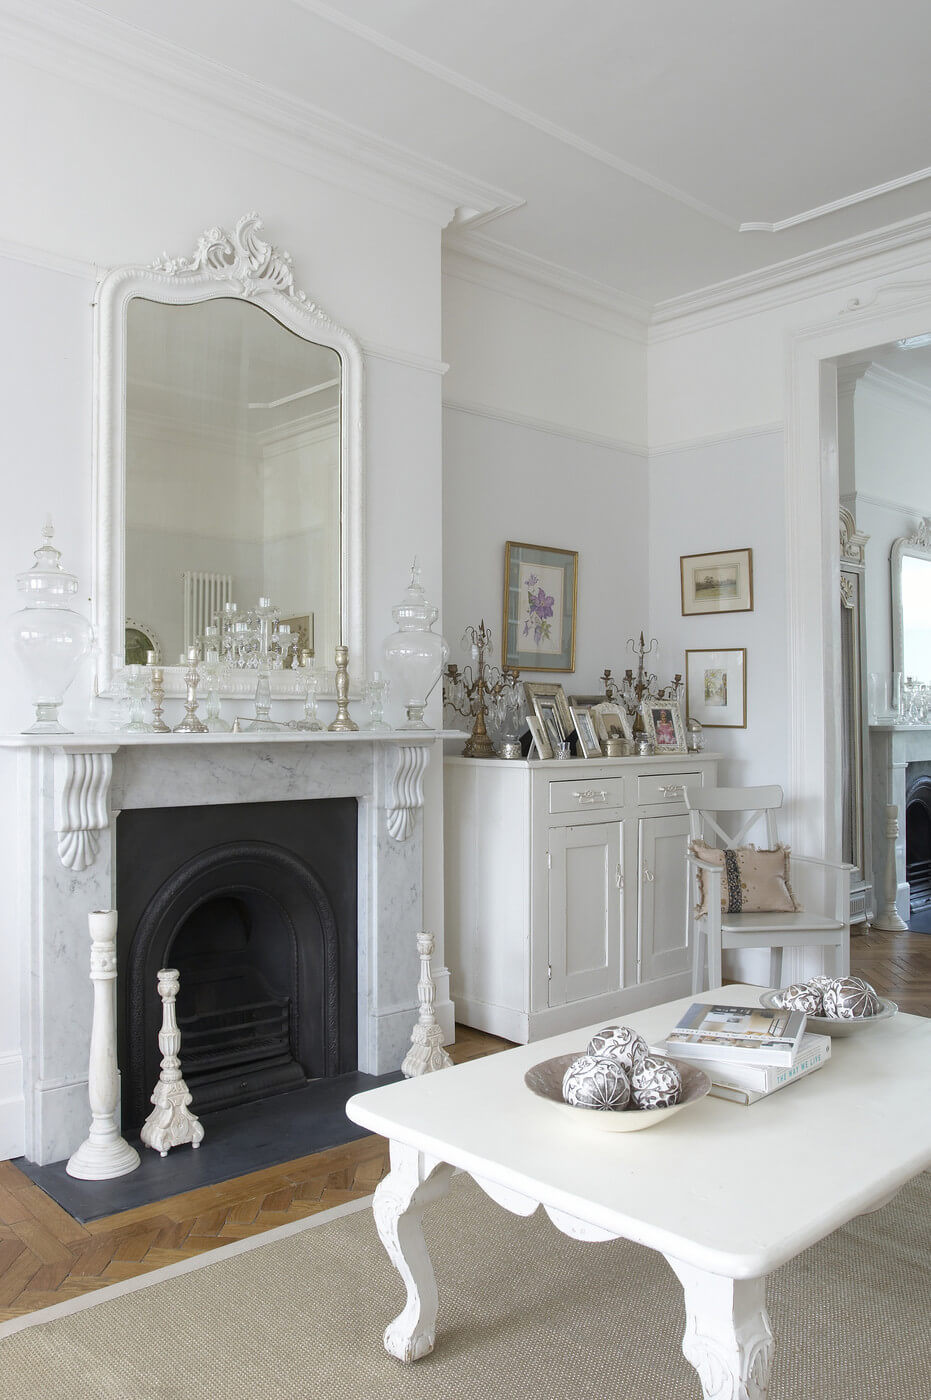 How to welcome shabby chic decor in your home interior - White walls living room ...